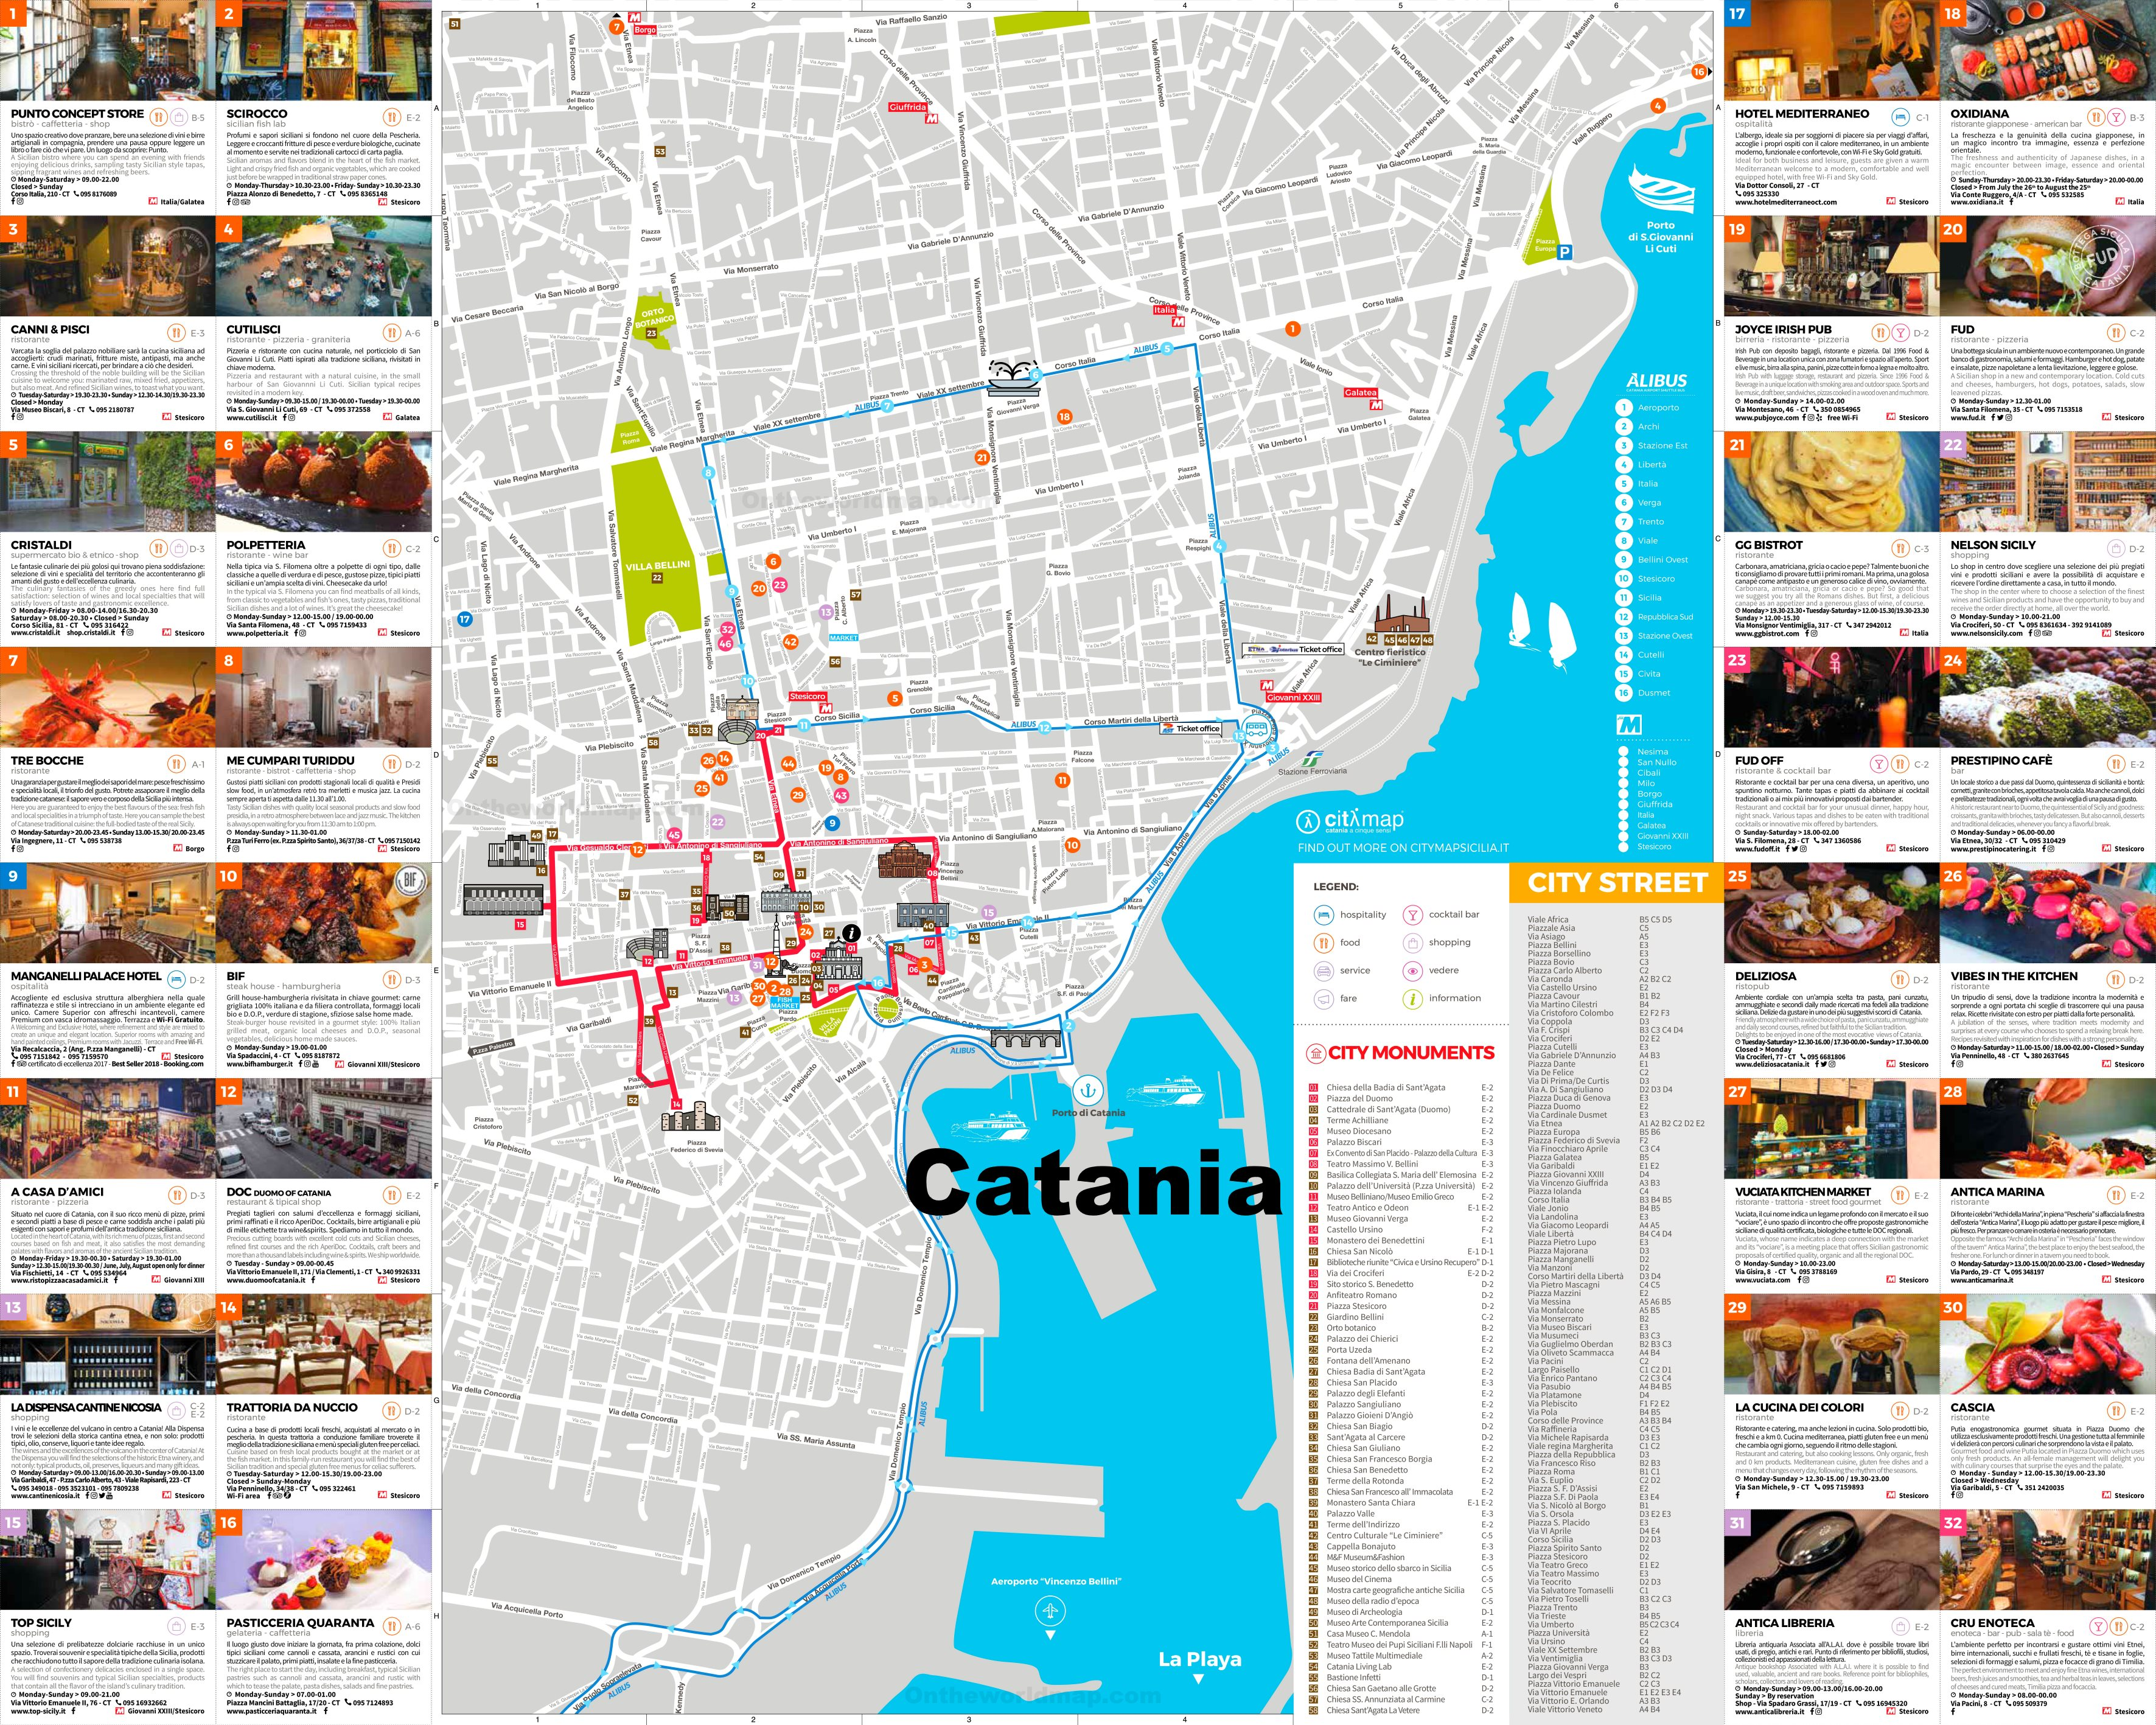 Catania Tourist Attractions Map